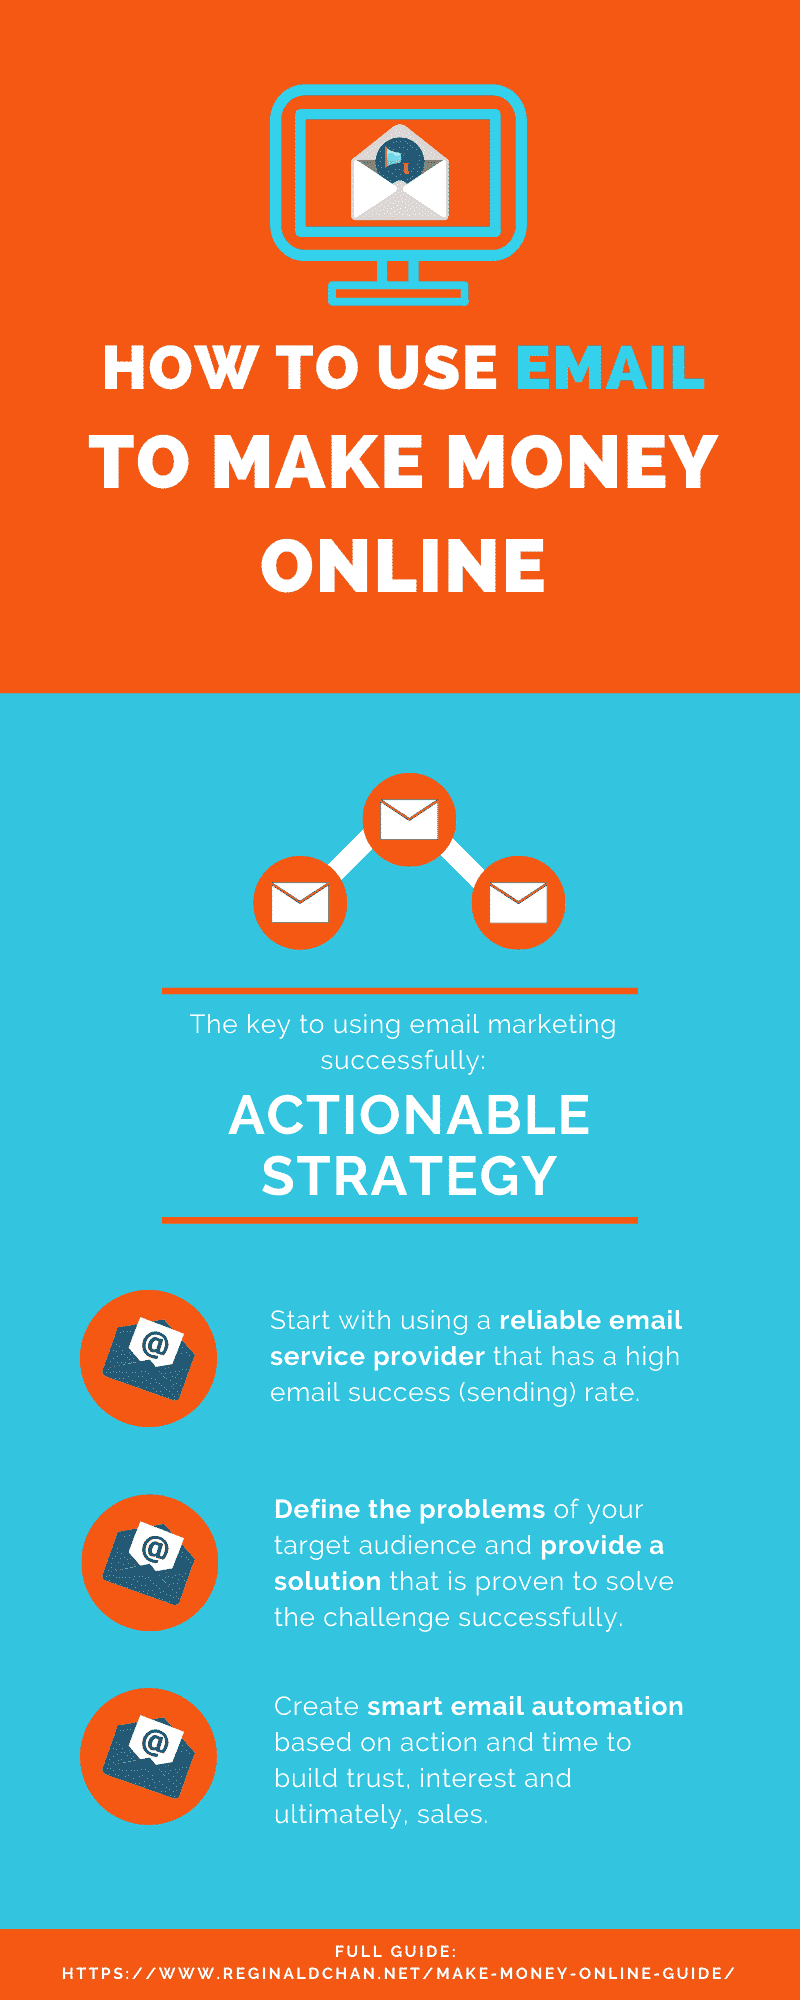 How To Use Email To Make Money Online